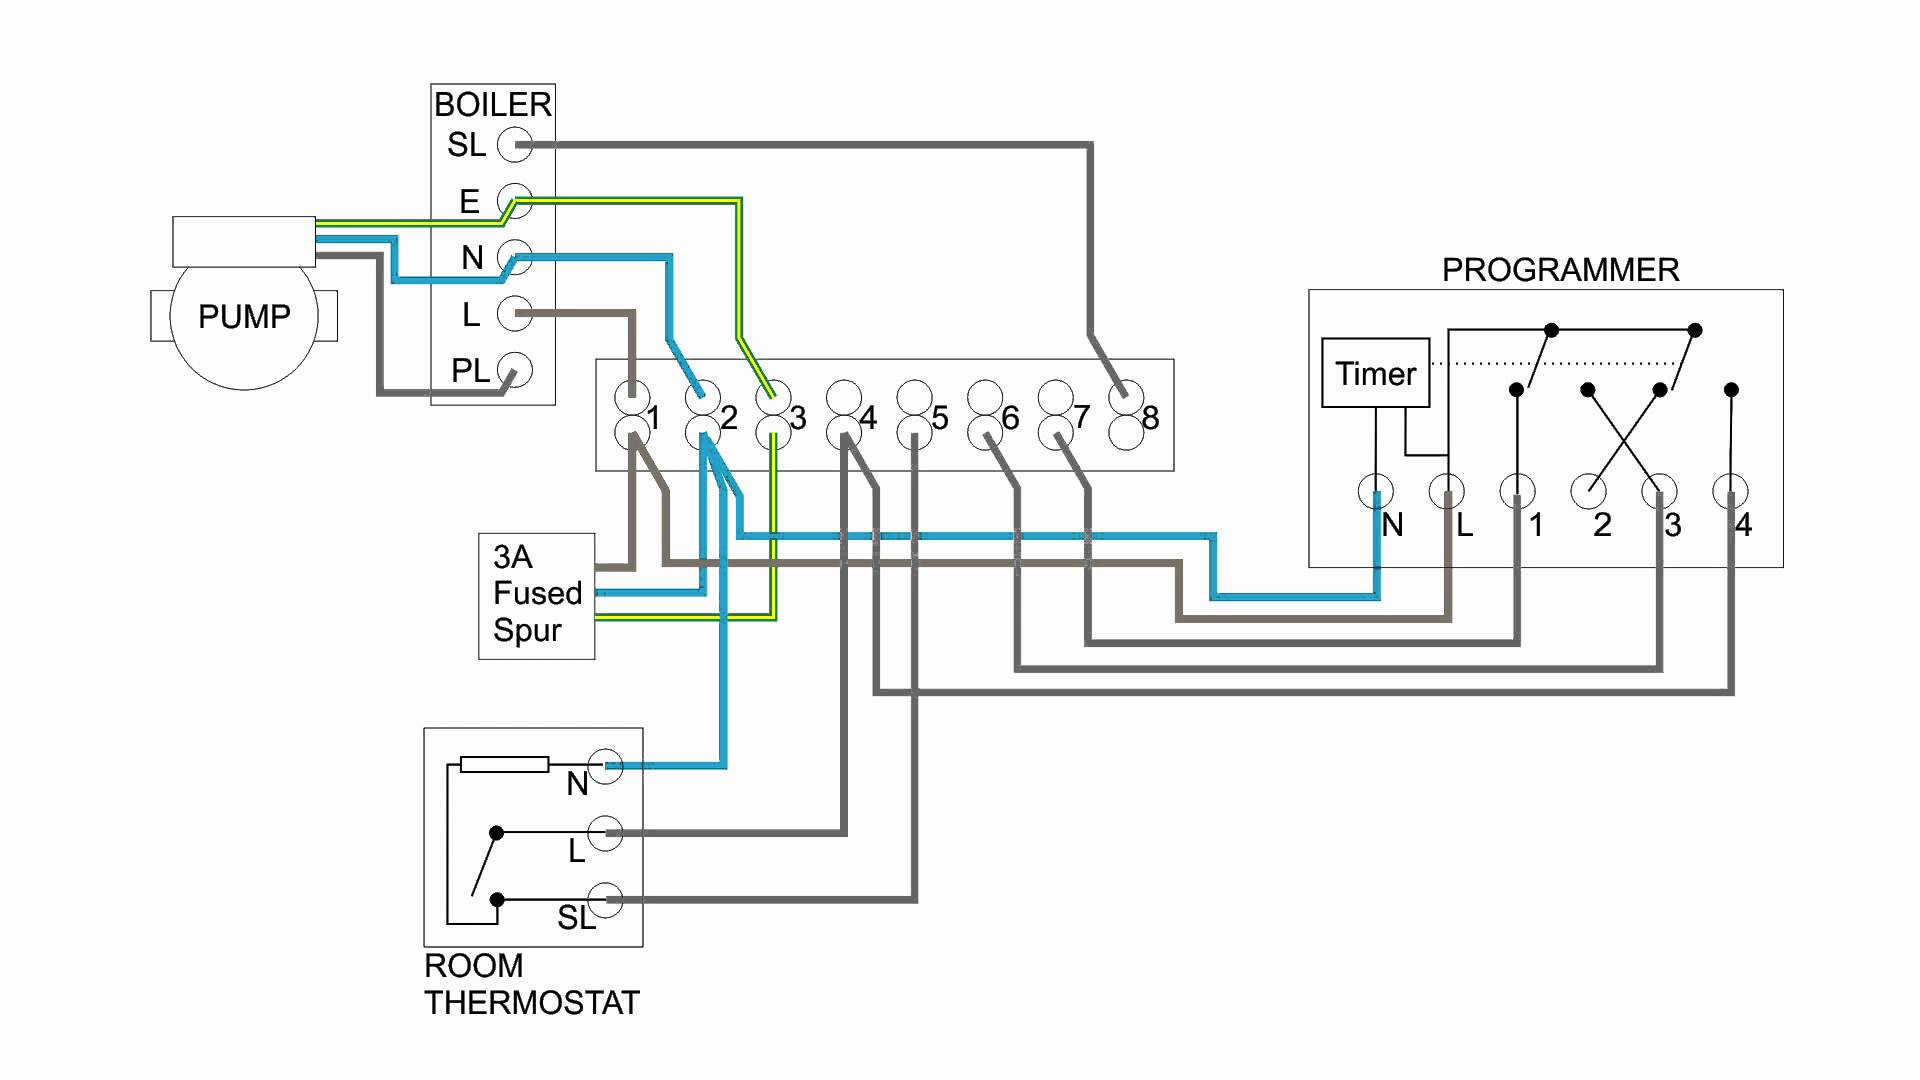 electric heat thermostat wiring diagram Download-Hive thermostat Wiring Diagram New Central Heating Electrical Wiring Part 3 Y Plan Youtube 10-p